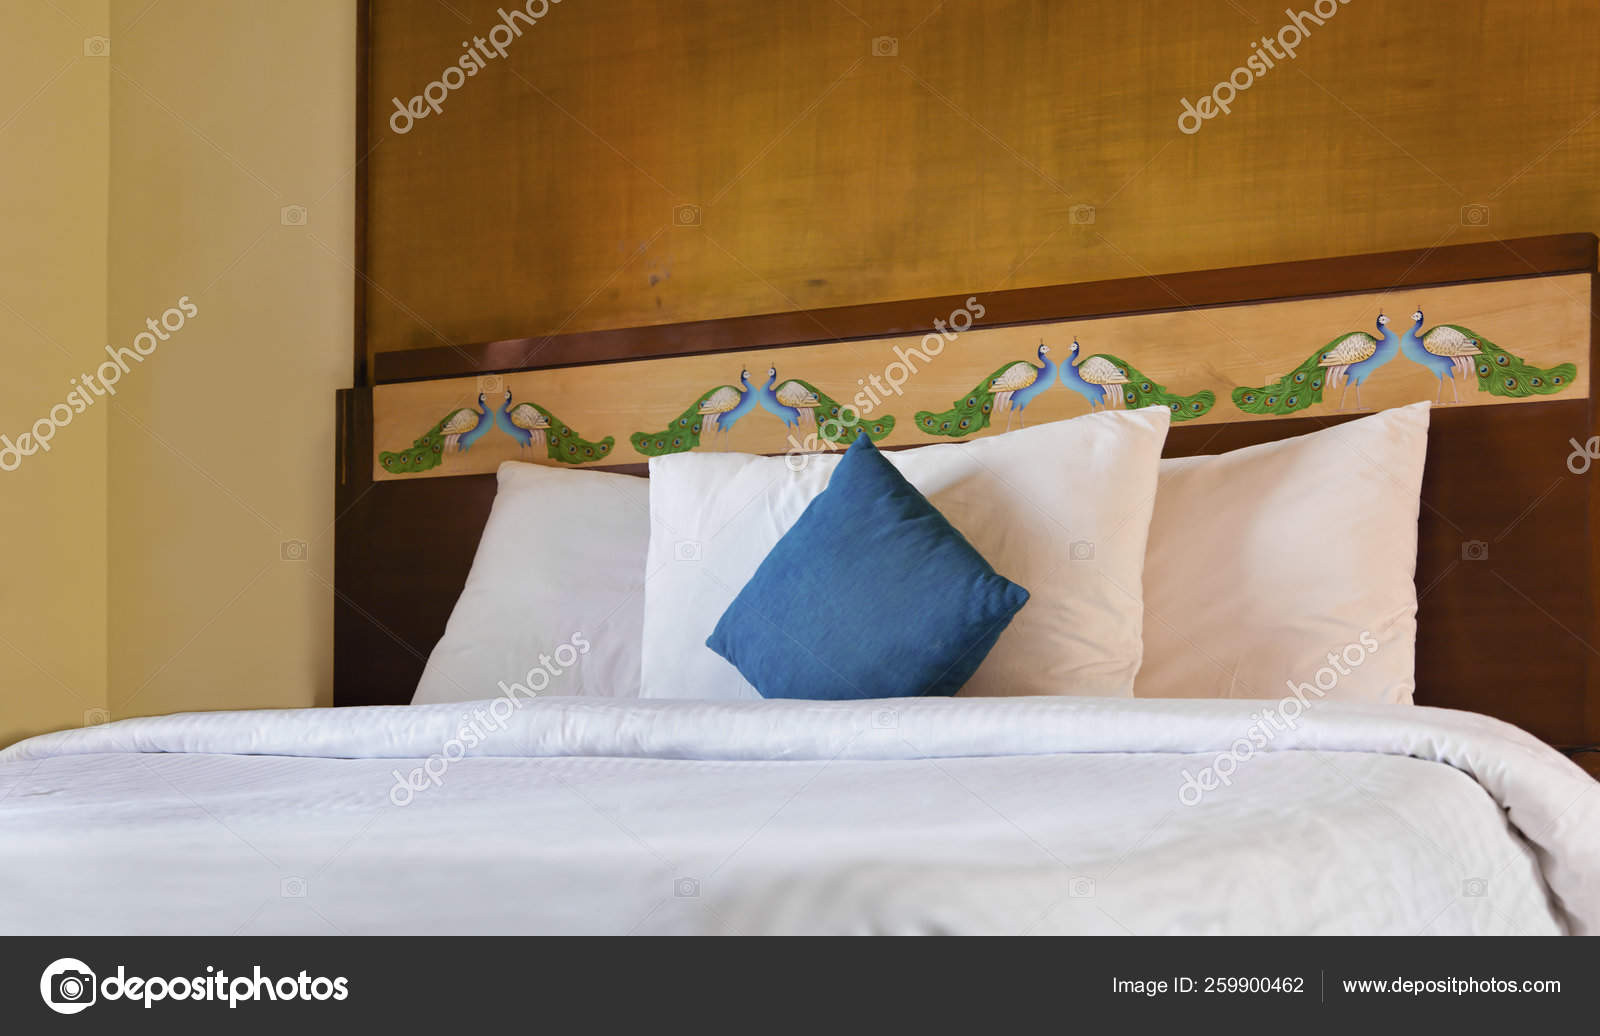 Indian Bedroom Interior Design Layout White Bedding Peacock Pattern Wooden Stock Photo Image By C Yayimages 259900462